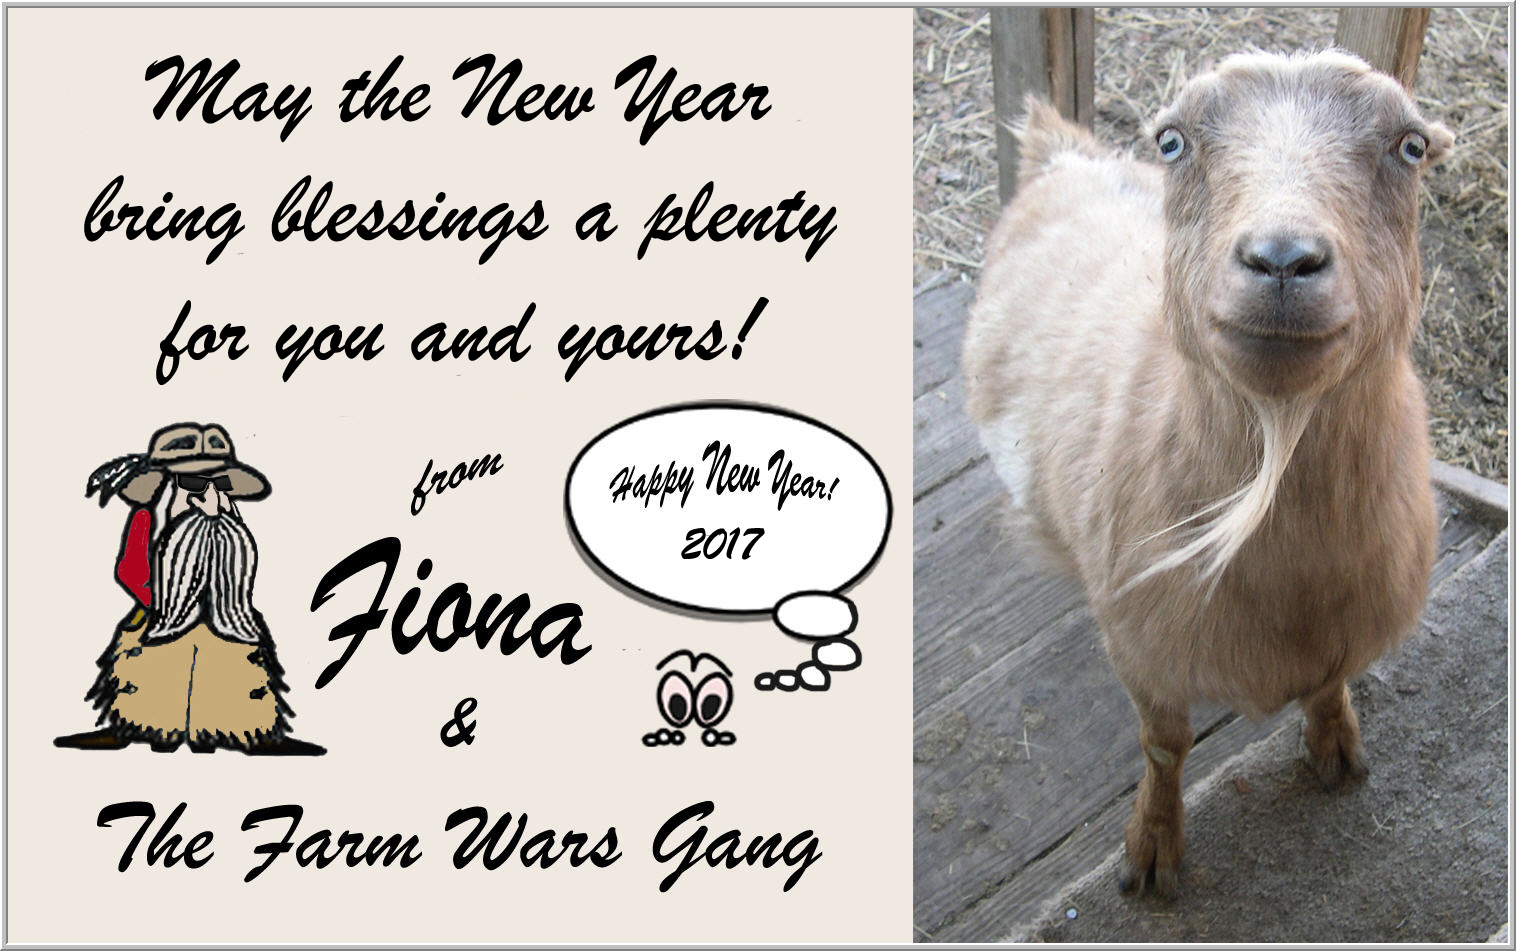 Blessings for the New Year - Here\'s a Calendar! | Farm Wars